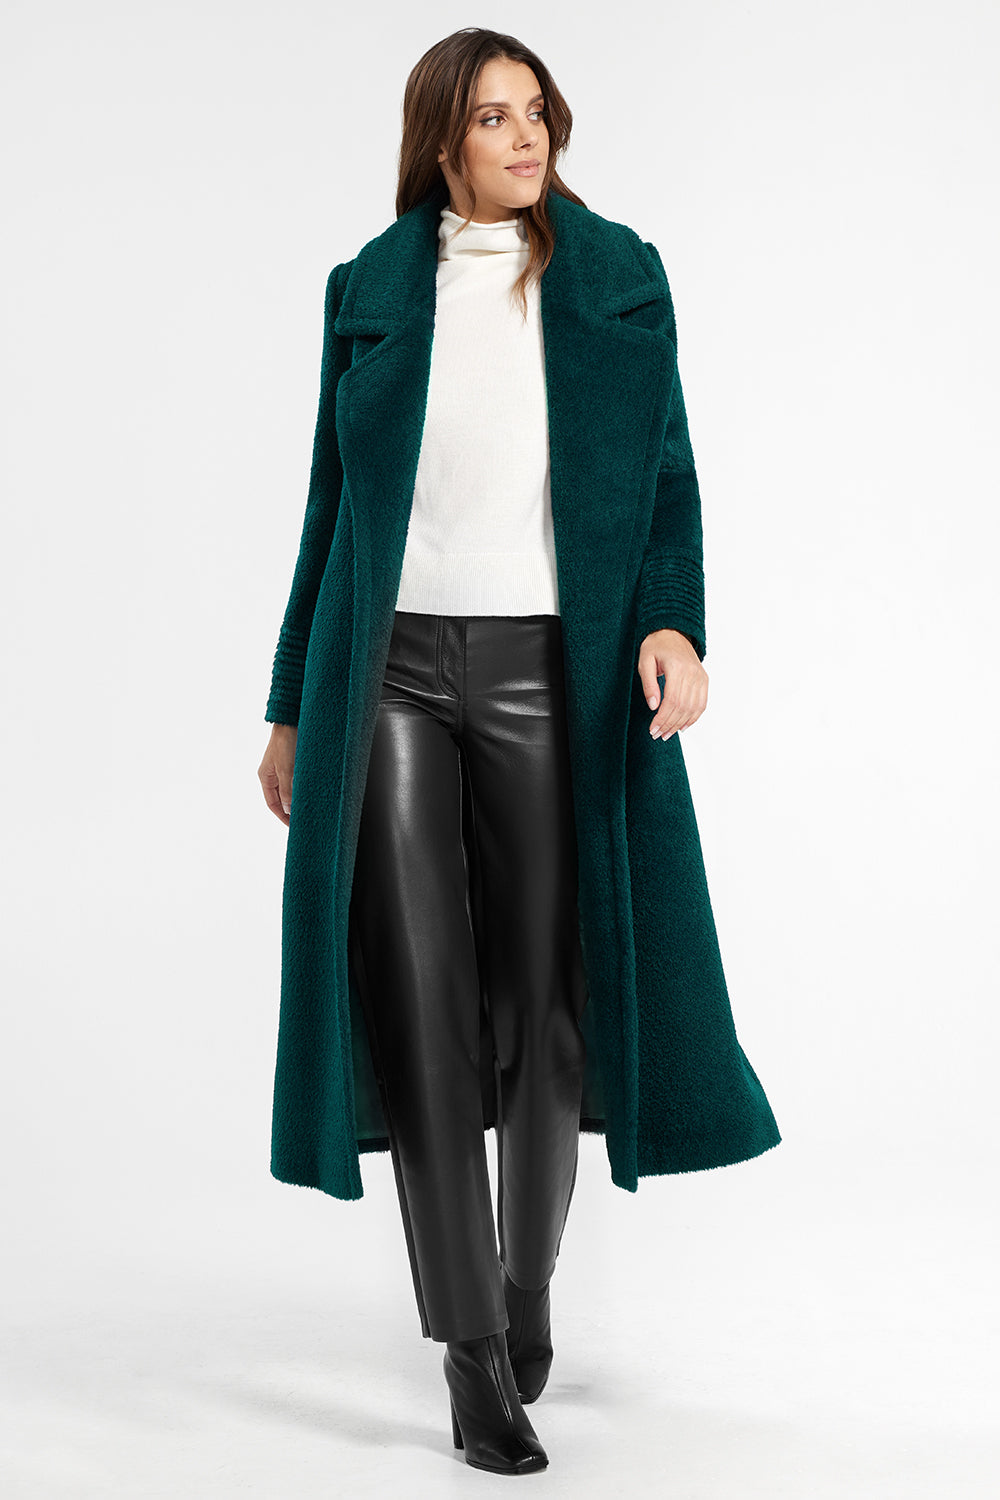 Sentaler Bouclé Alpaca Long Notched Collar Wrap Coat featured in Bouclé Alpaca and available in Emerald Green. Seen open.